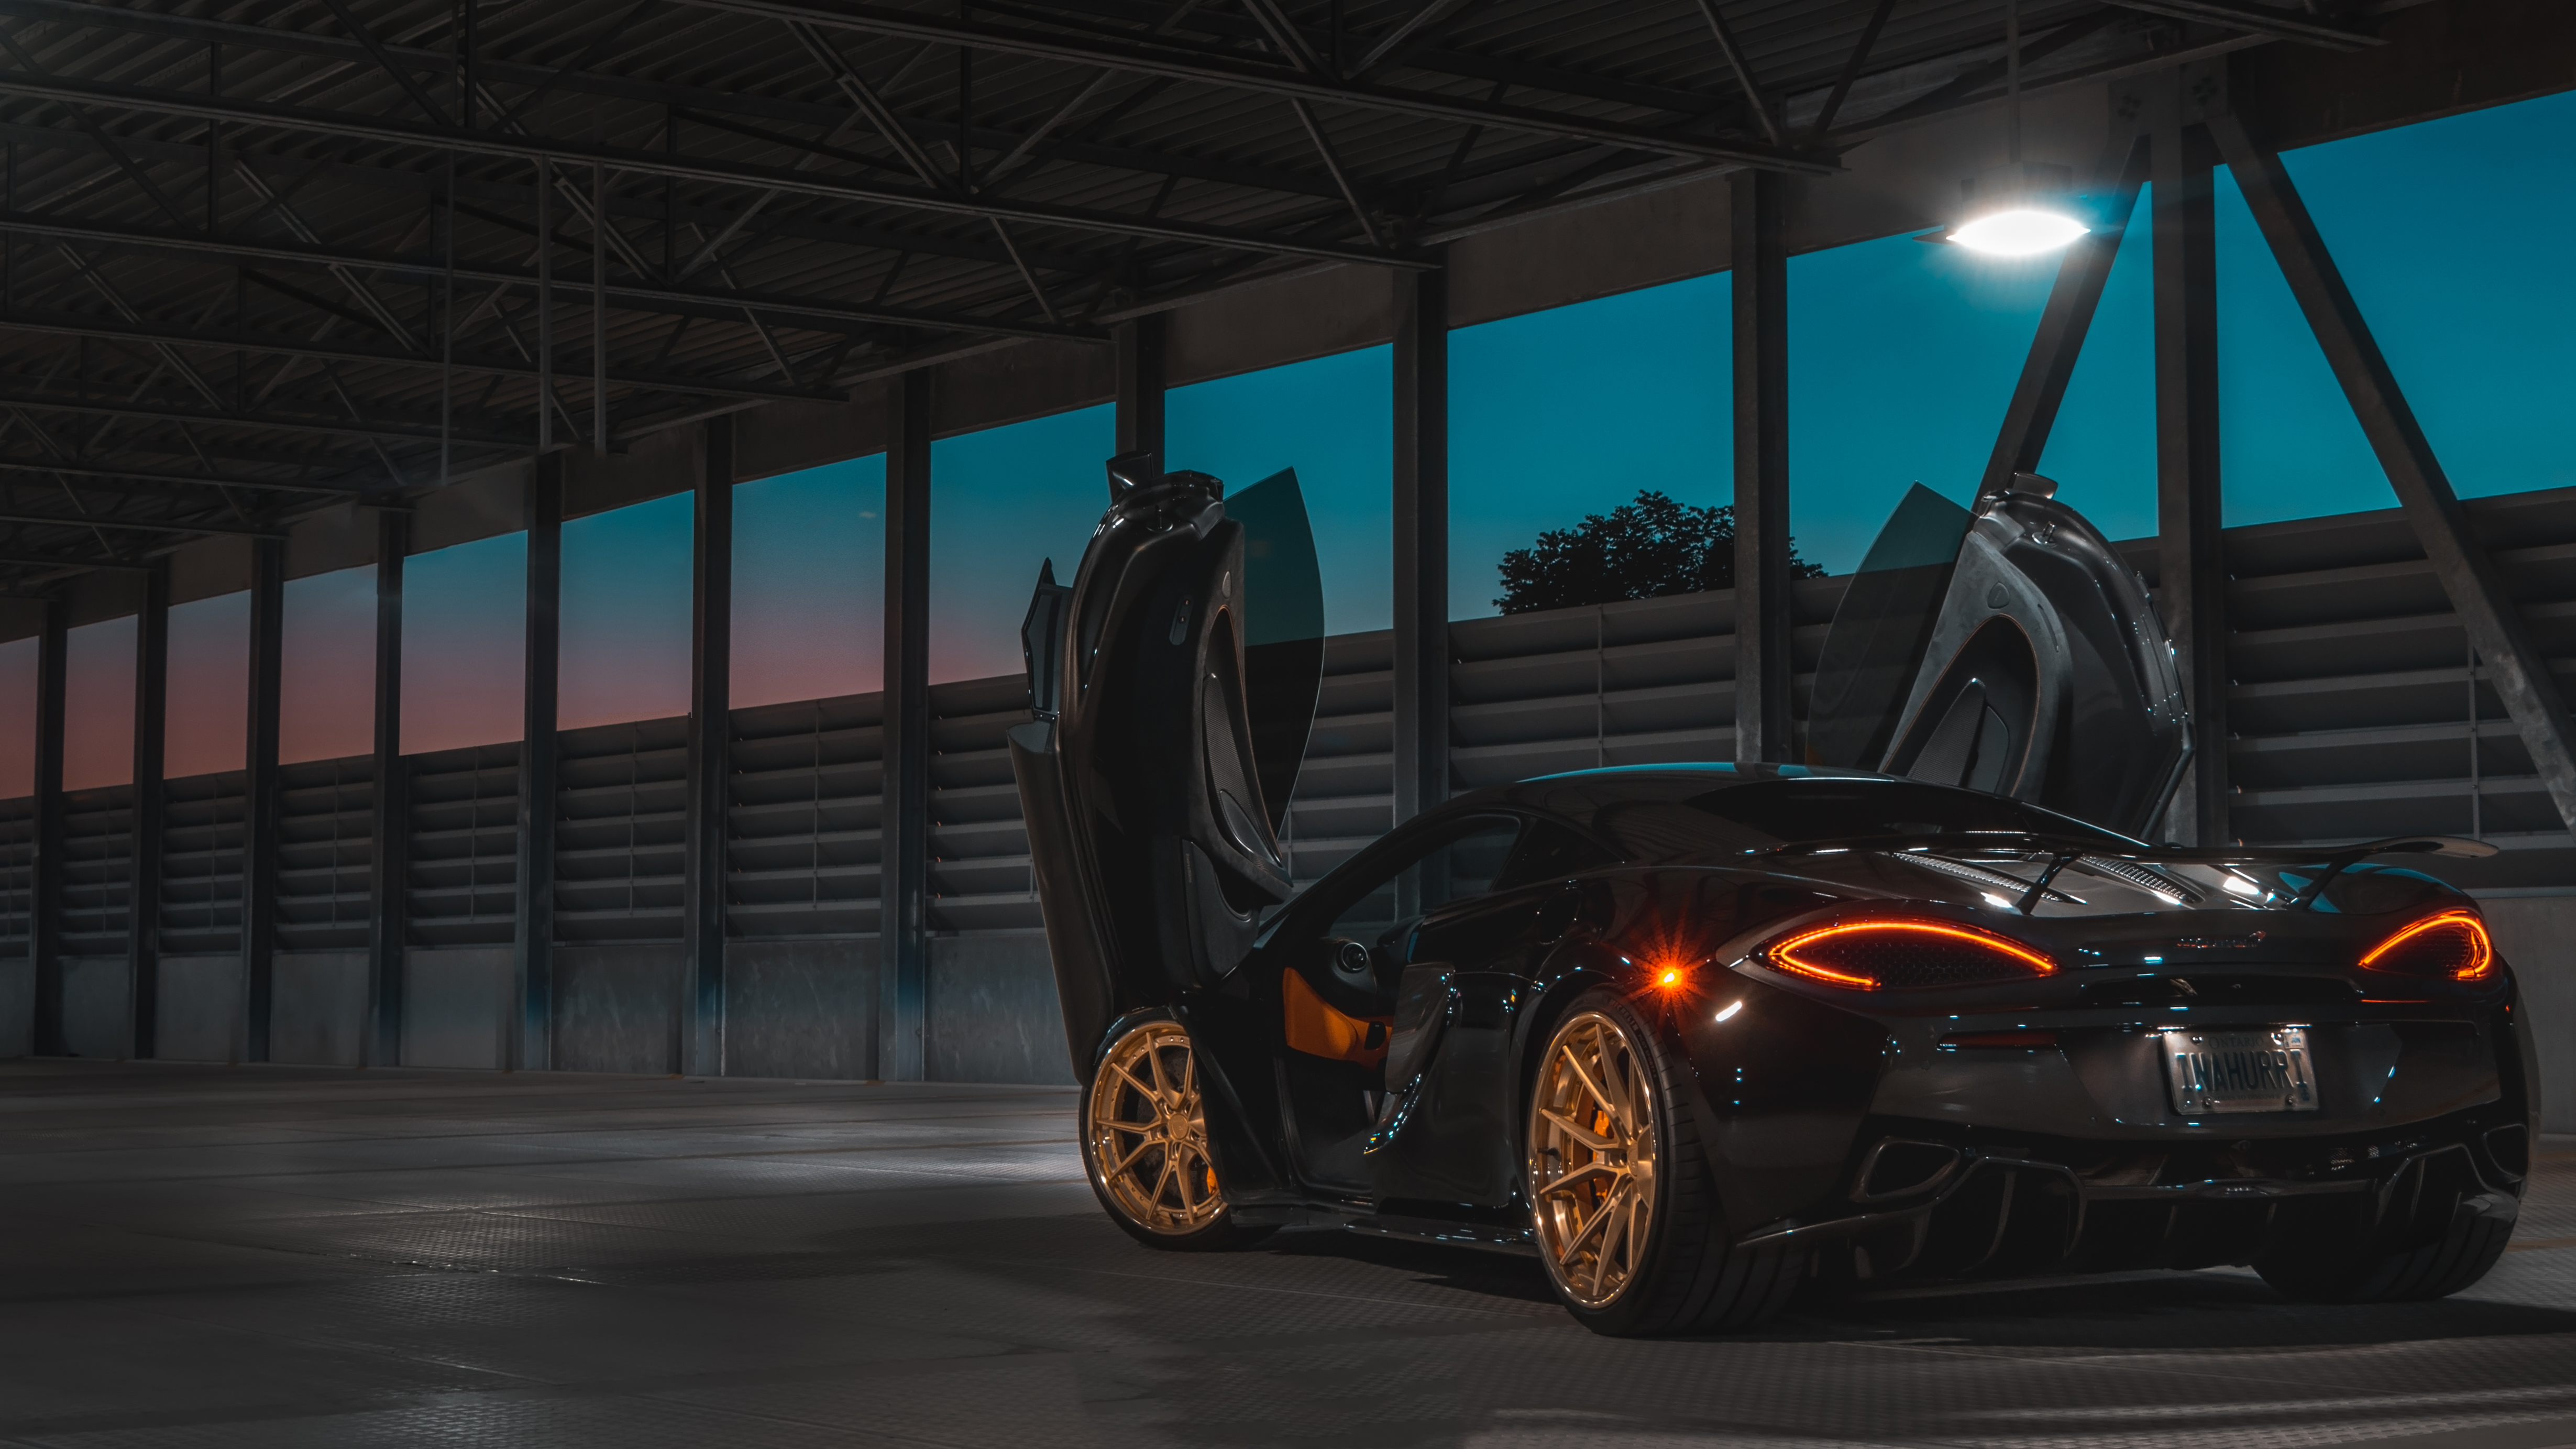 1366x768 Black Mclaren In The Night 5k 1366x768 Resolution Hd 4k Wallpapers Images Backgrounds Photos And Pictures